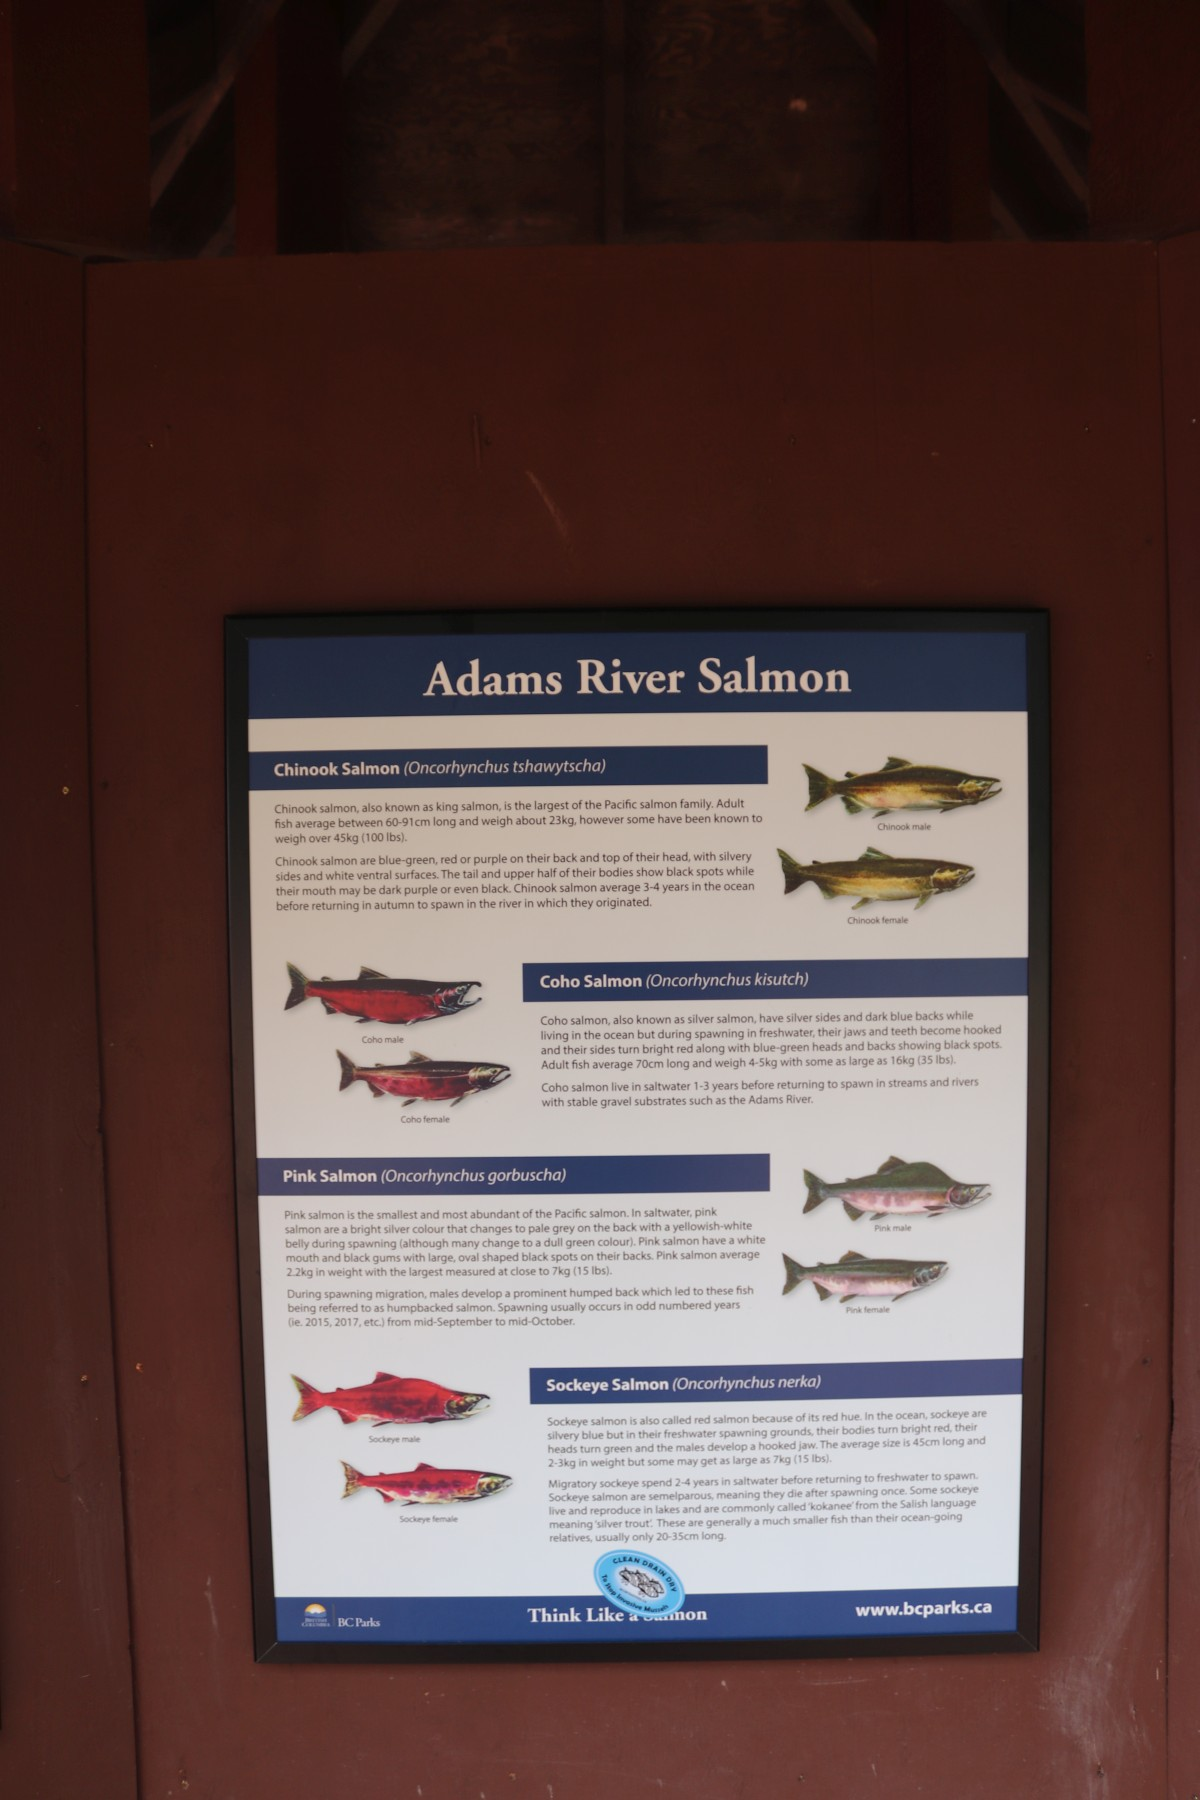 Adams River Salmon